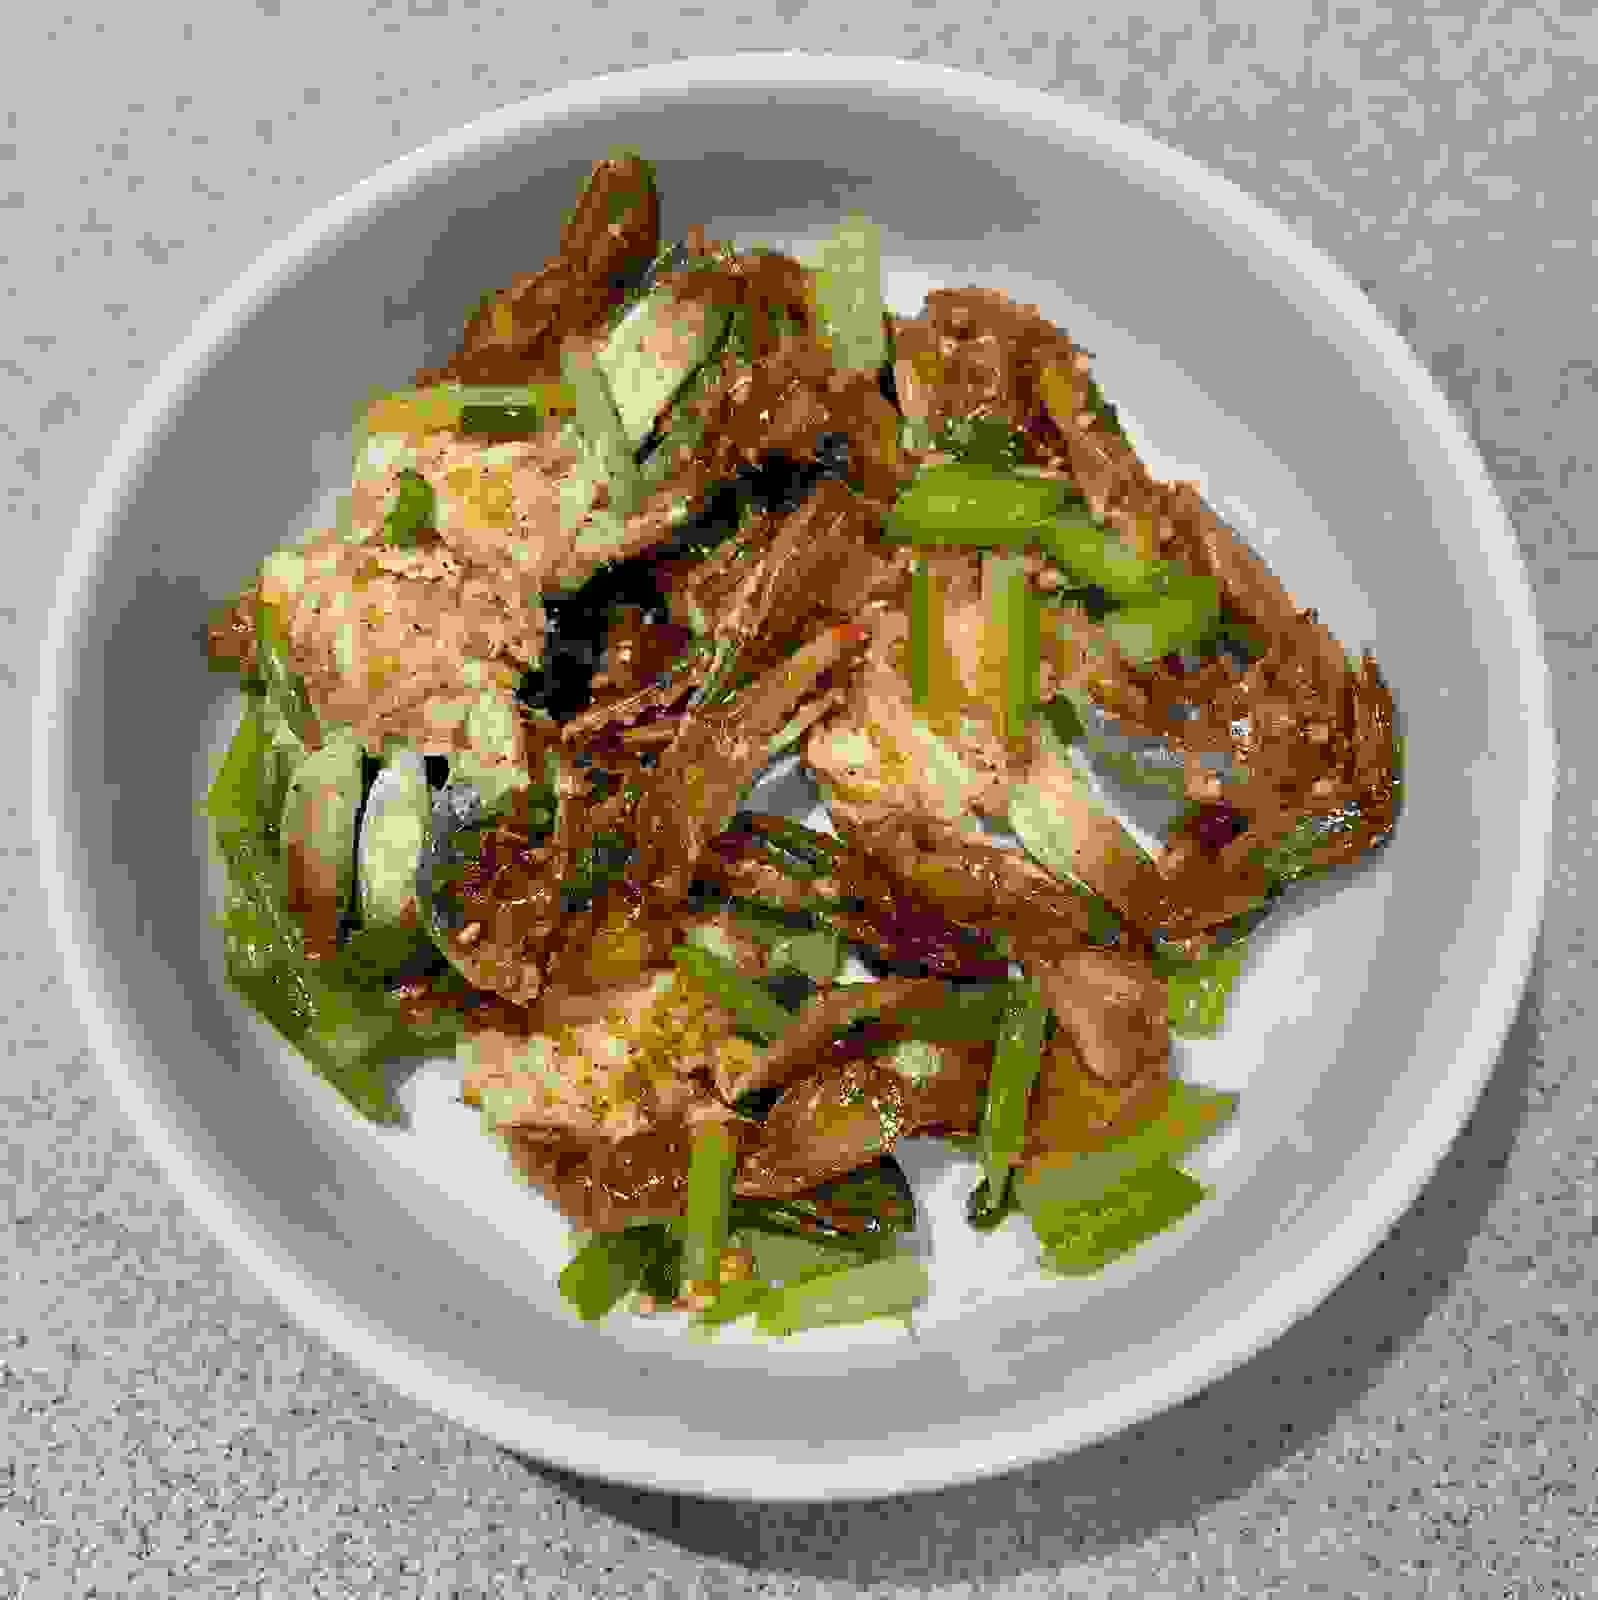 Pan Grilled Soft Shell Crabs with Veggies